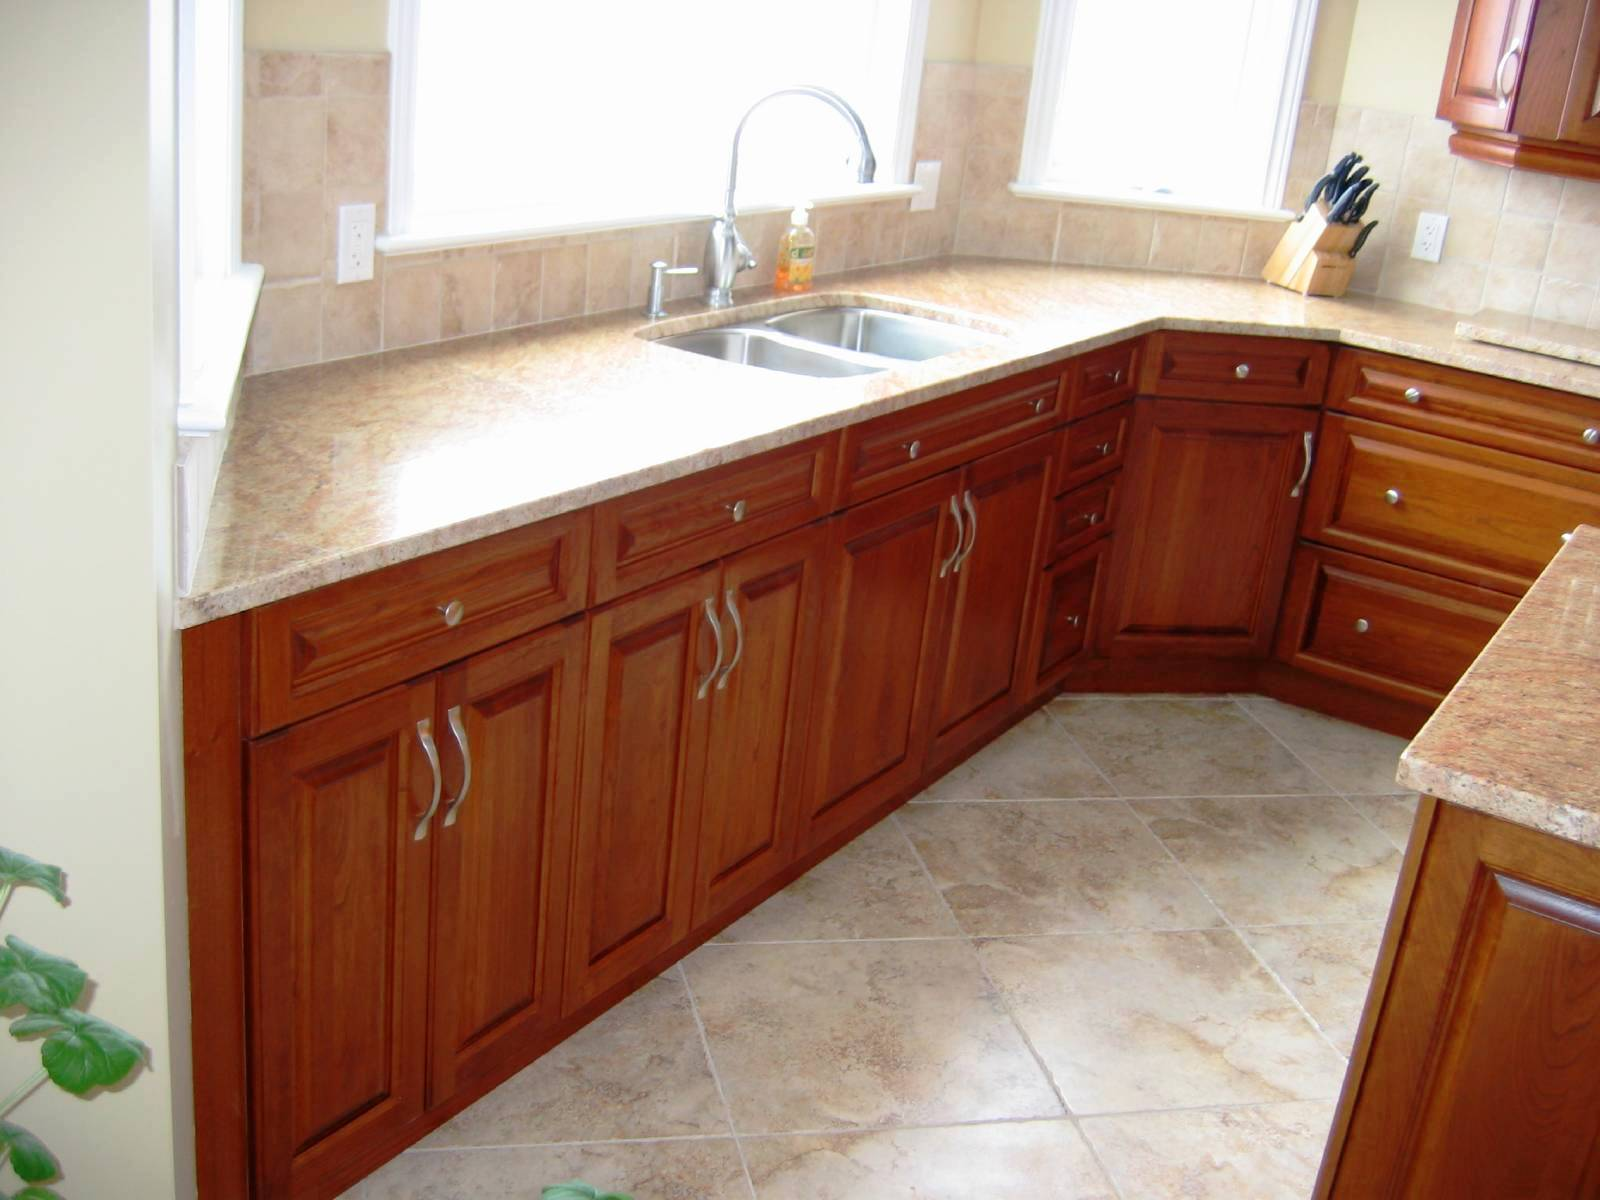 Kitchen Tiles Ottawa best of best. ottawa granite countertops | granite | marble | quartz